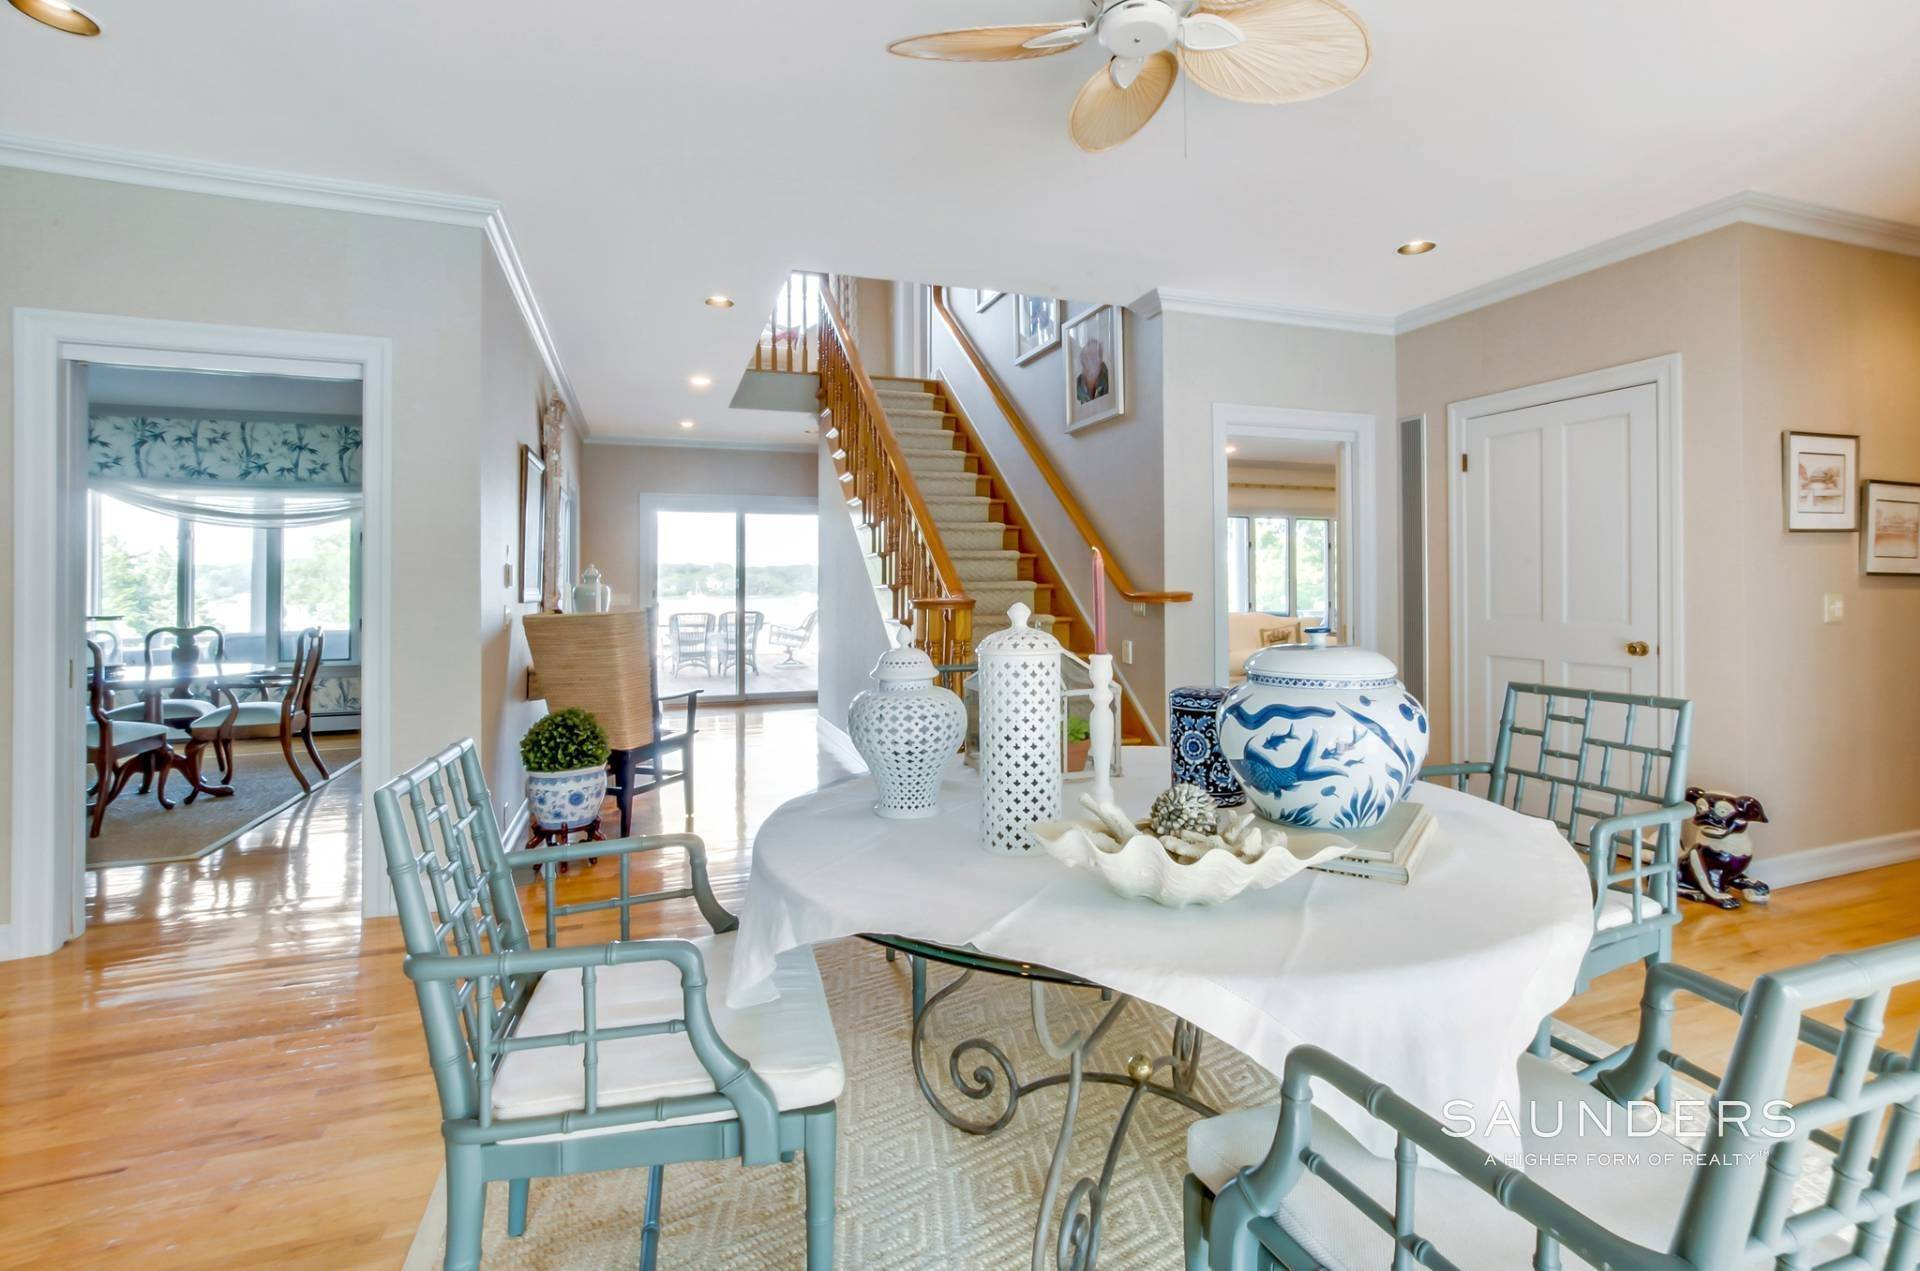 4. Single Family Homes for Sale at Estate Section Compound With Deep Water Dock, Sandy Beach, Pool 58 Westmoreland Drive, Shelter Island Heights, Shelter Island, NY 11964